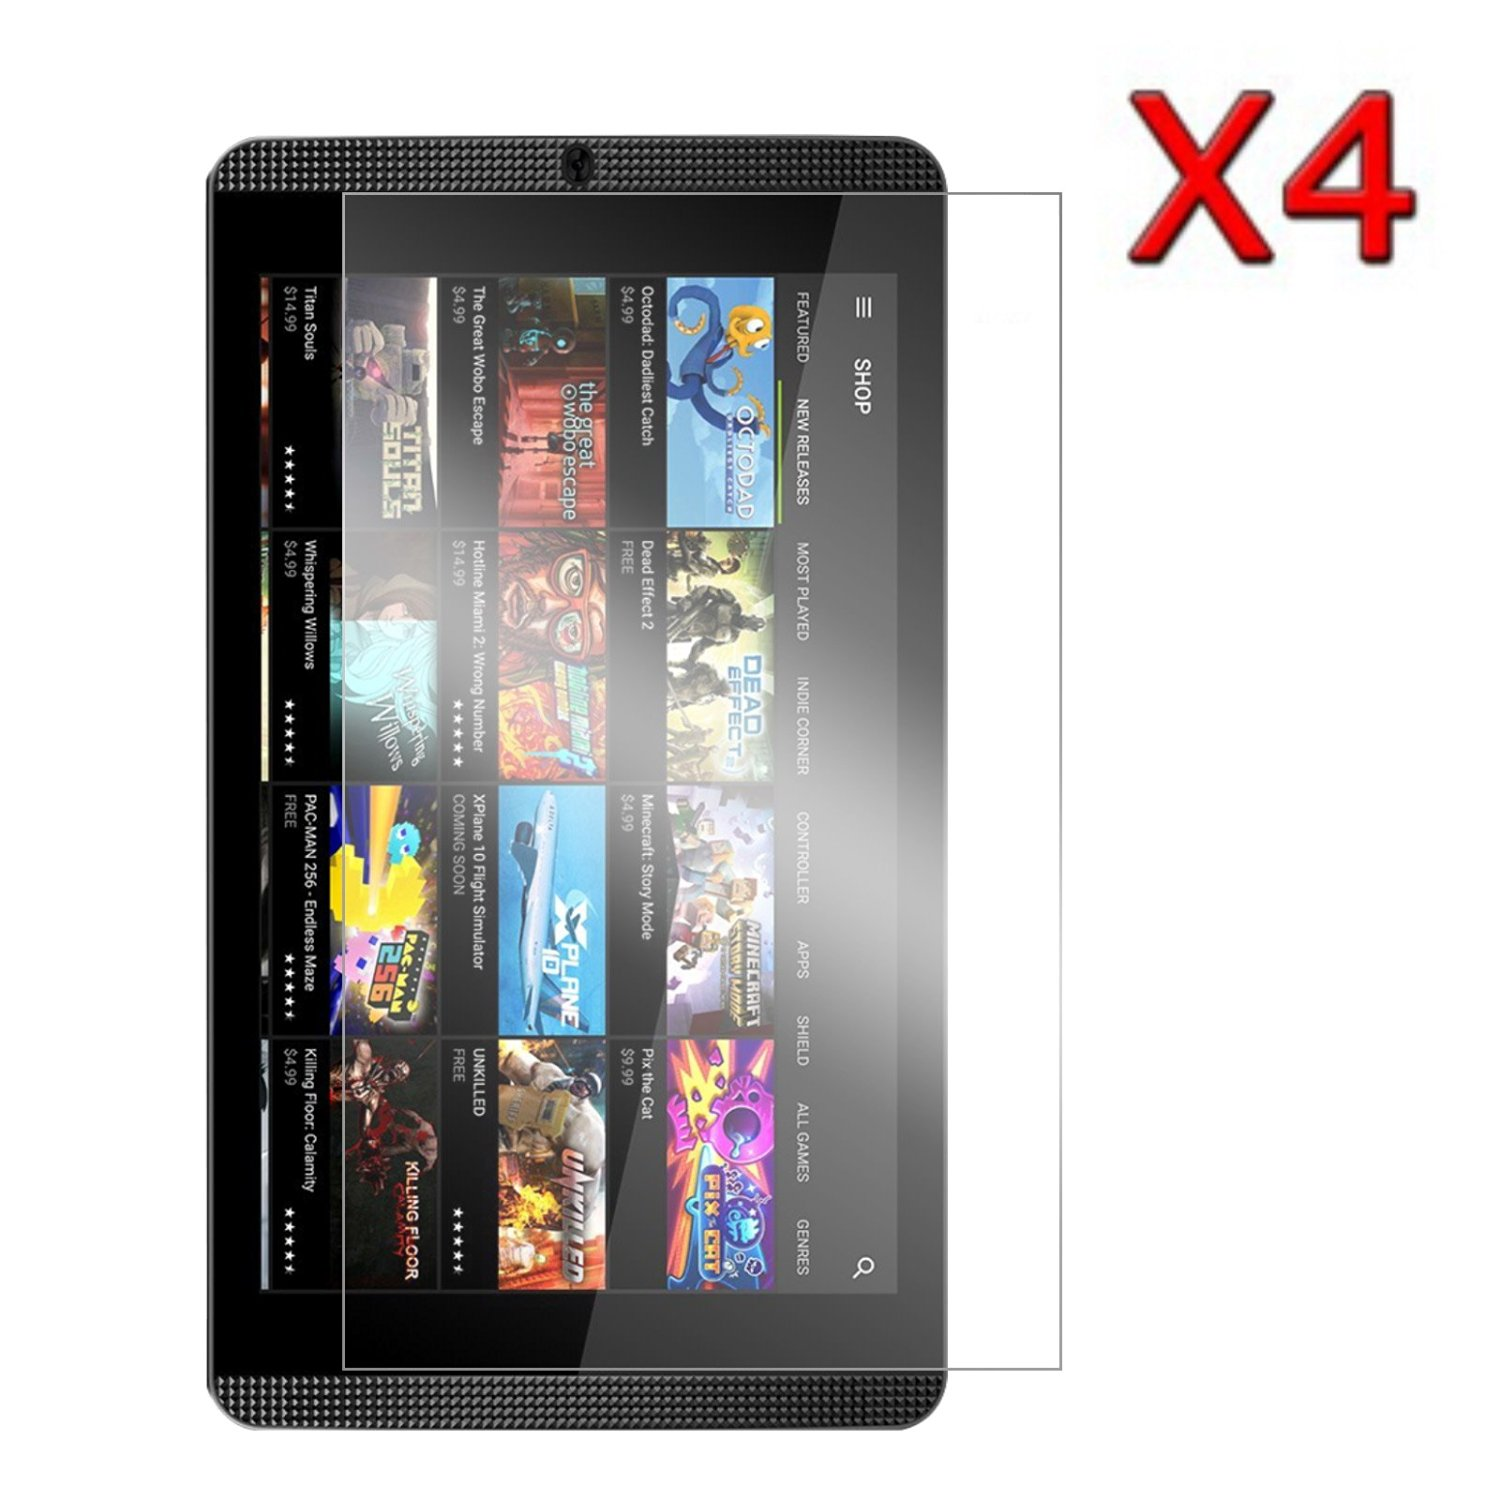 NVIDIA SHIELD Tablet K1 Screen Protector, Transwon 4-Pack Ultra-Clear Screen Protector Film Guard for 2015 Nvidia Shield K-1 8(Newest Version) / 2014 NVIDIA Shield 2 Tablet 8-Inch